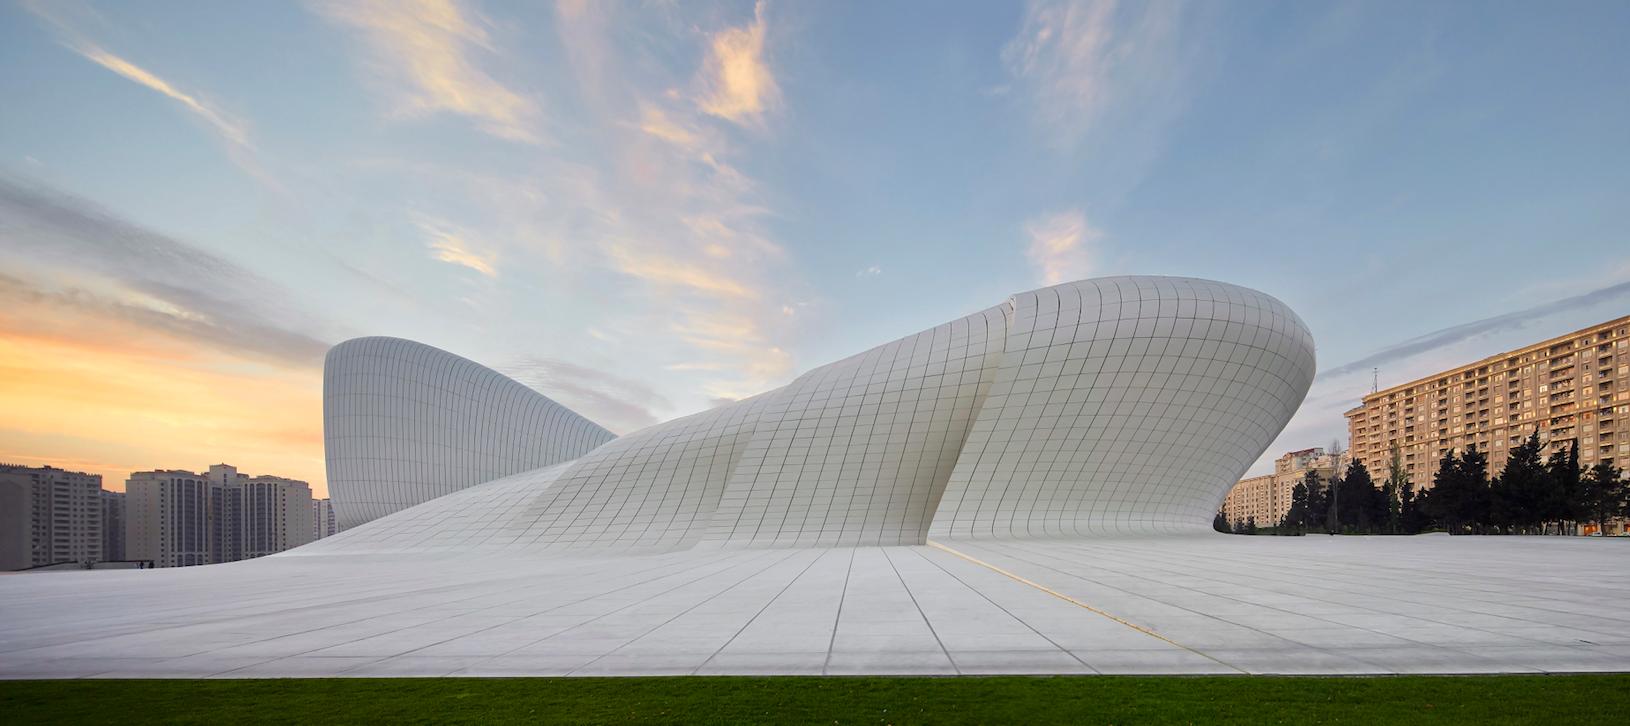 Heydar Aliyev Center (photo by Hufton+Crow)